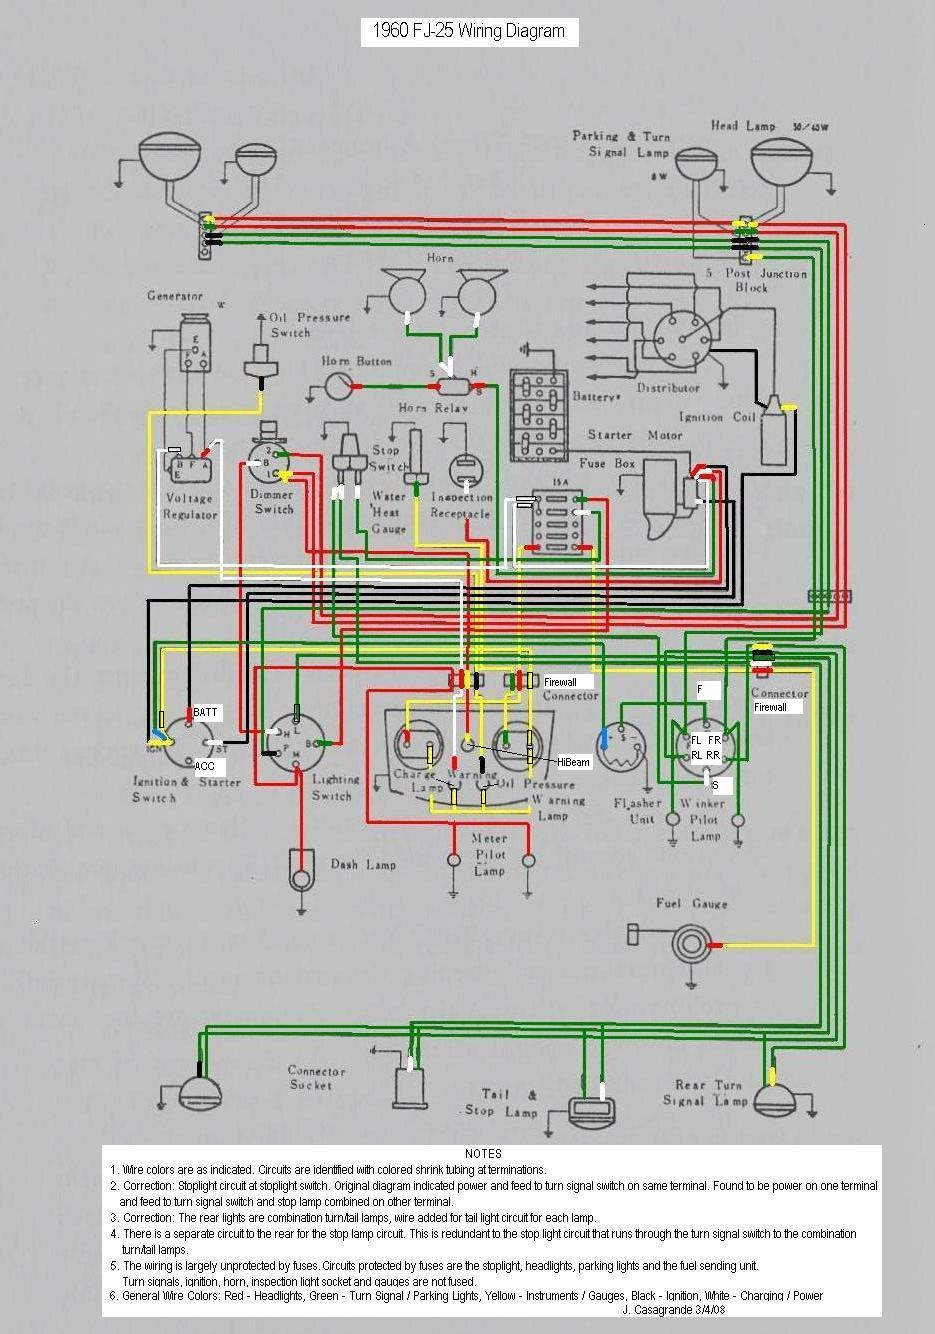 coolermans electrical schematic and fsm file retrieval